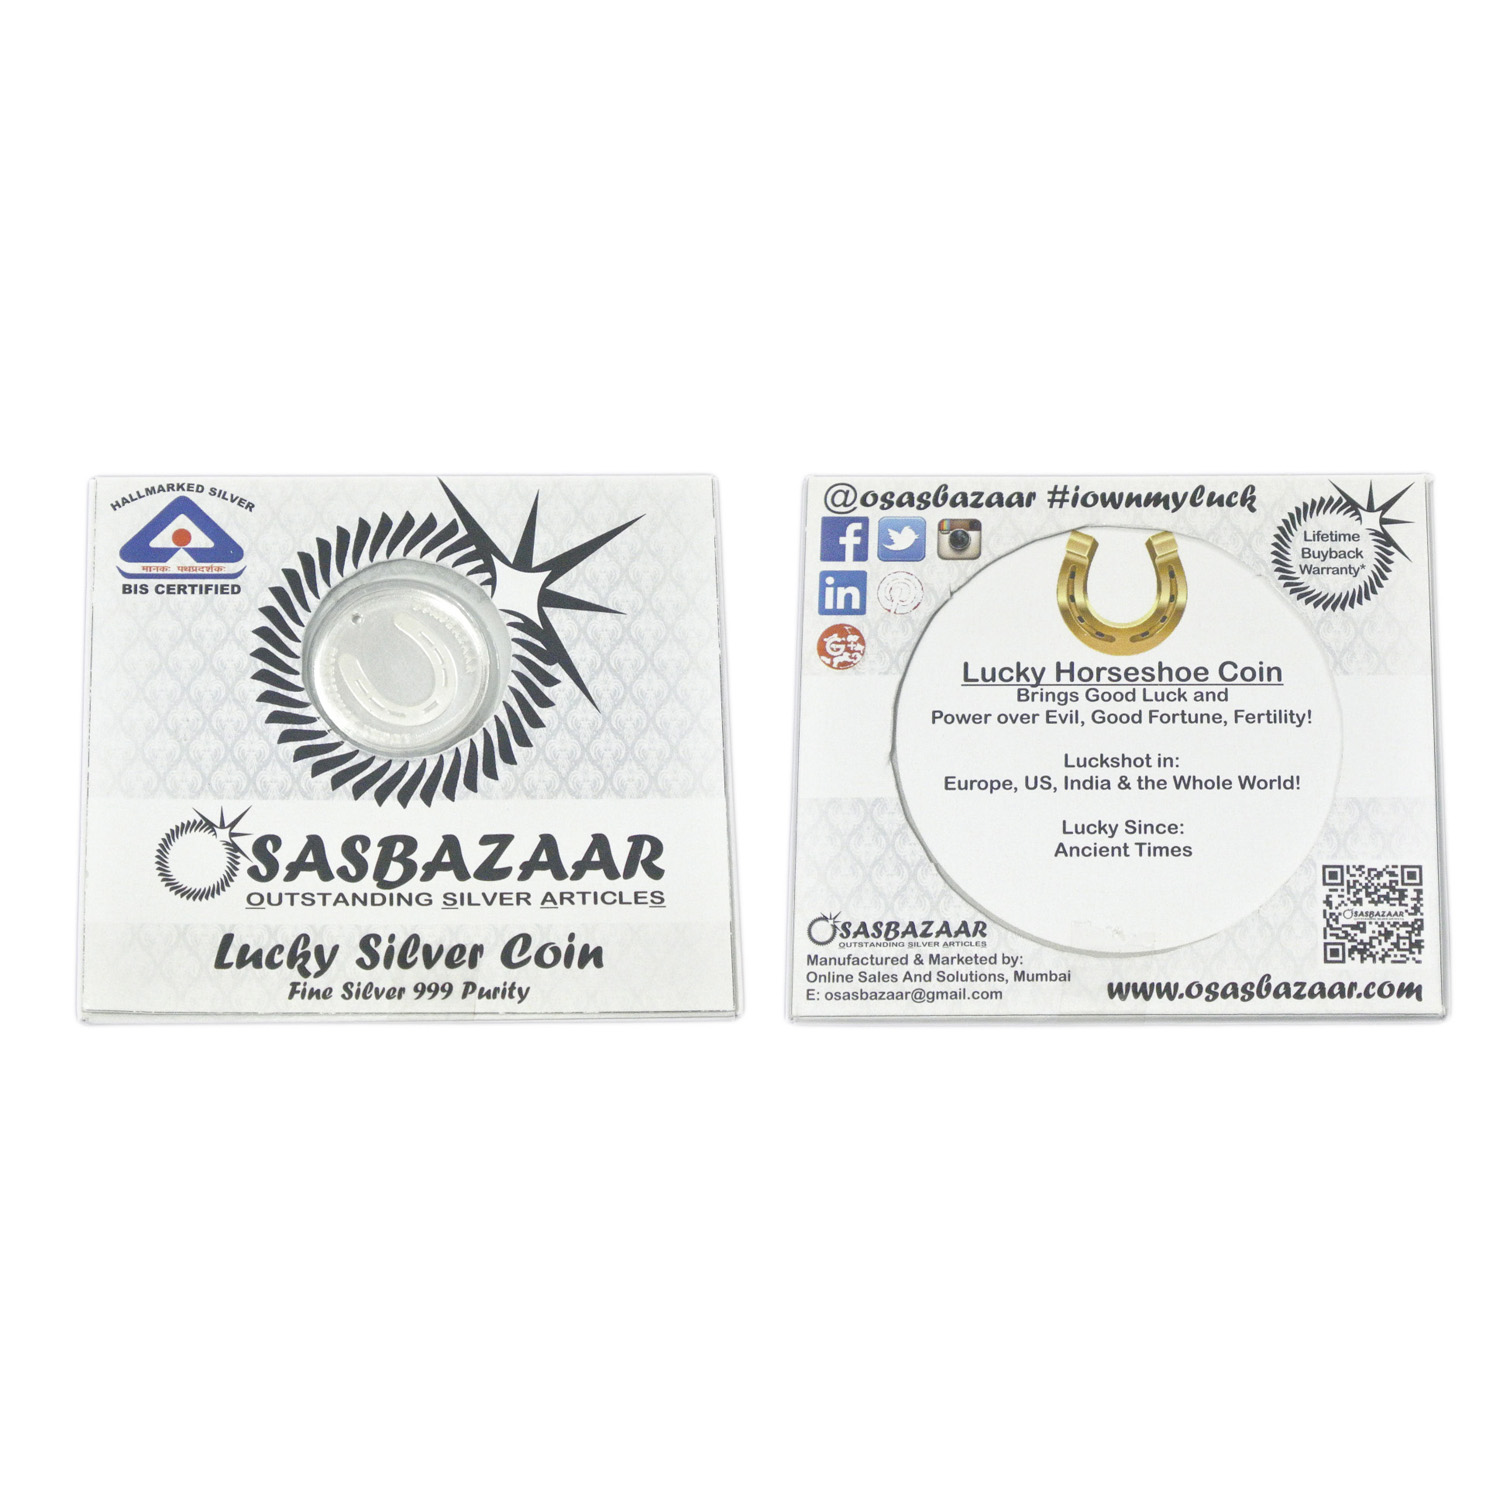 Silver Lucky Horseshoe Coin Packaging - Front and Back